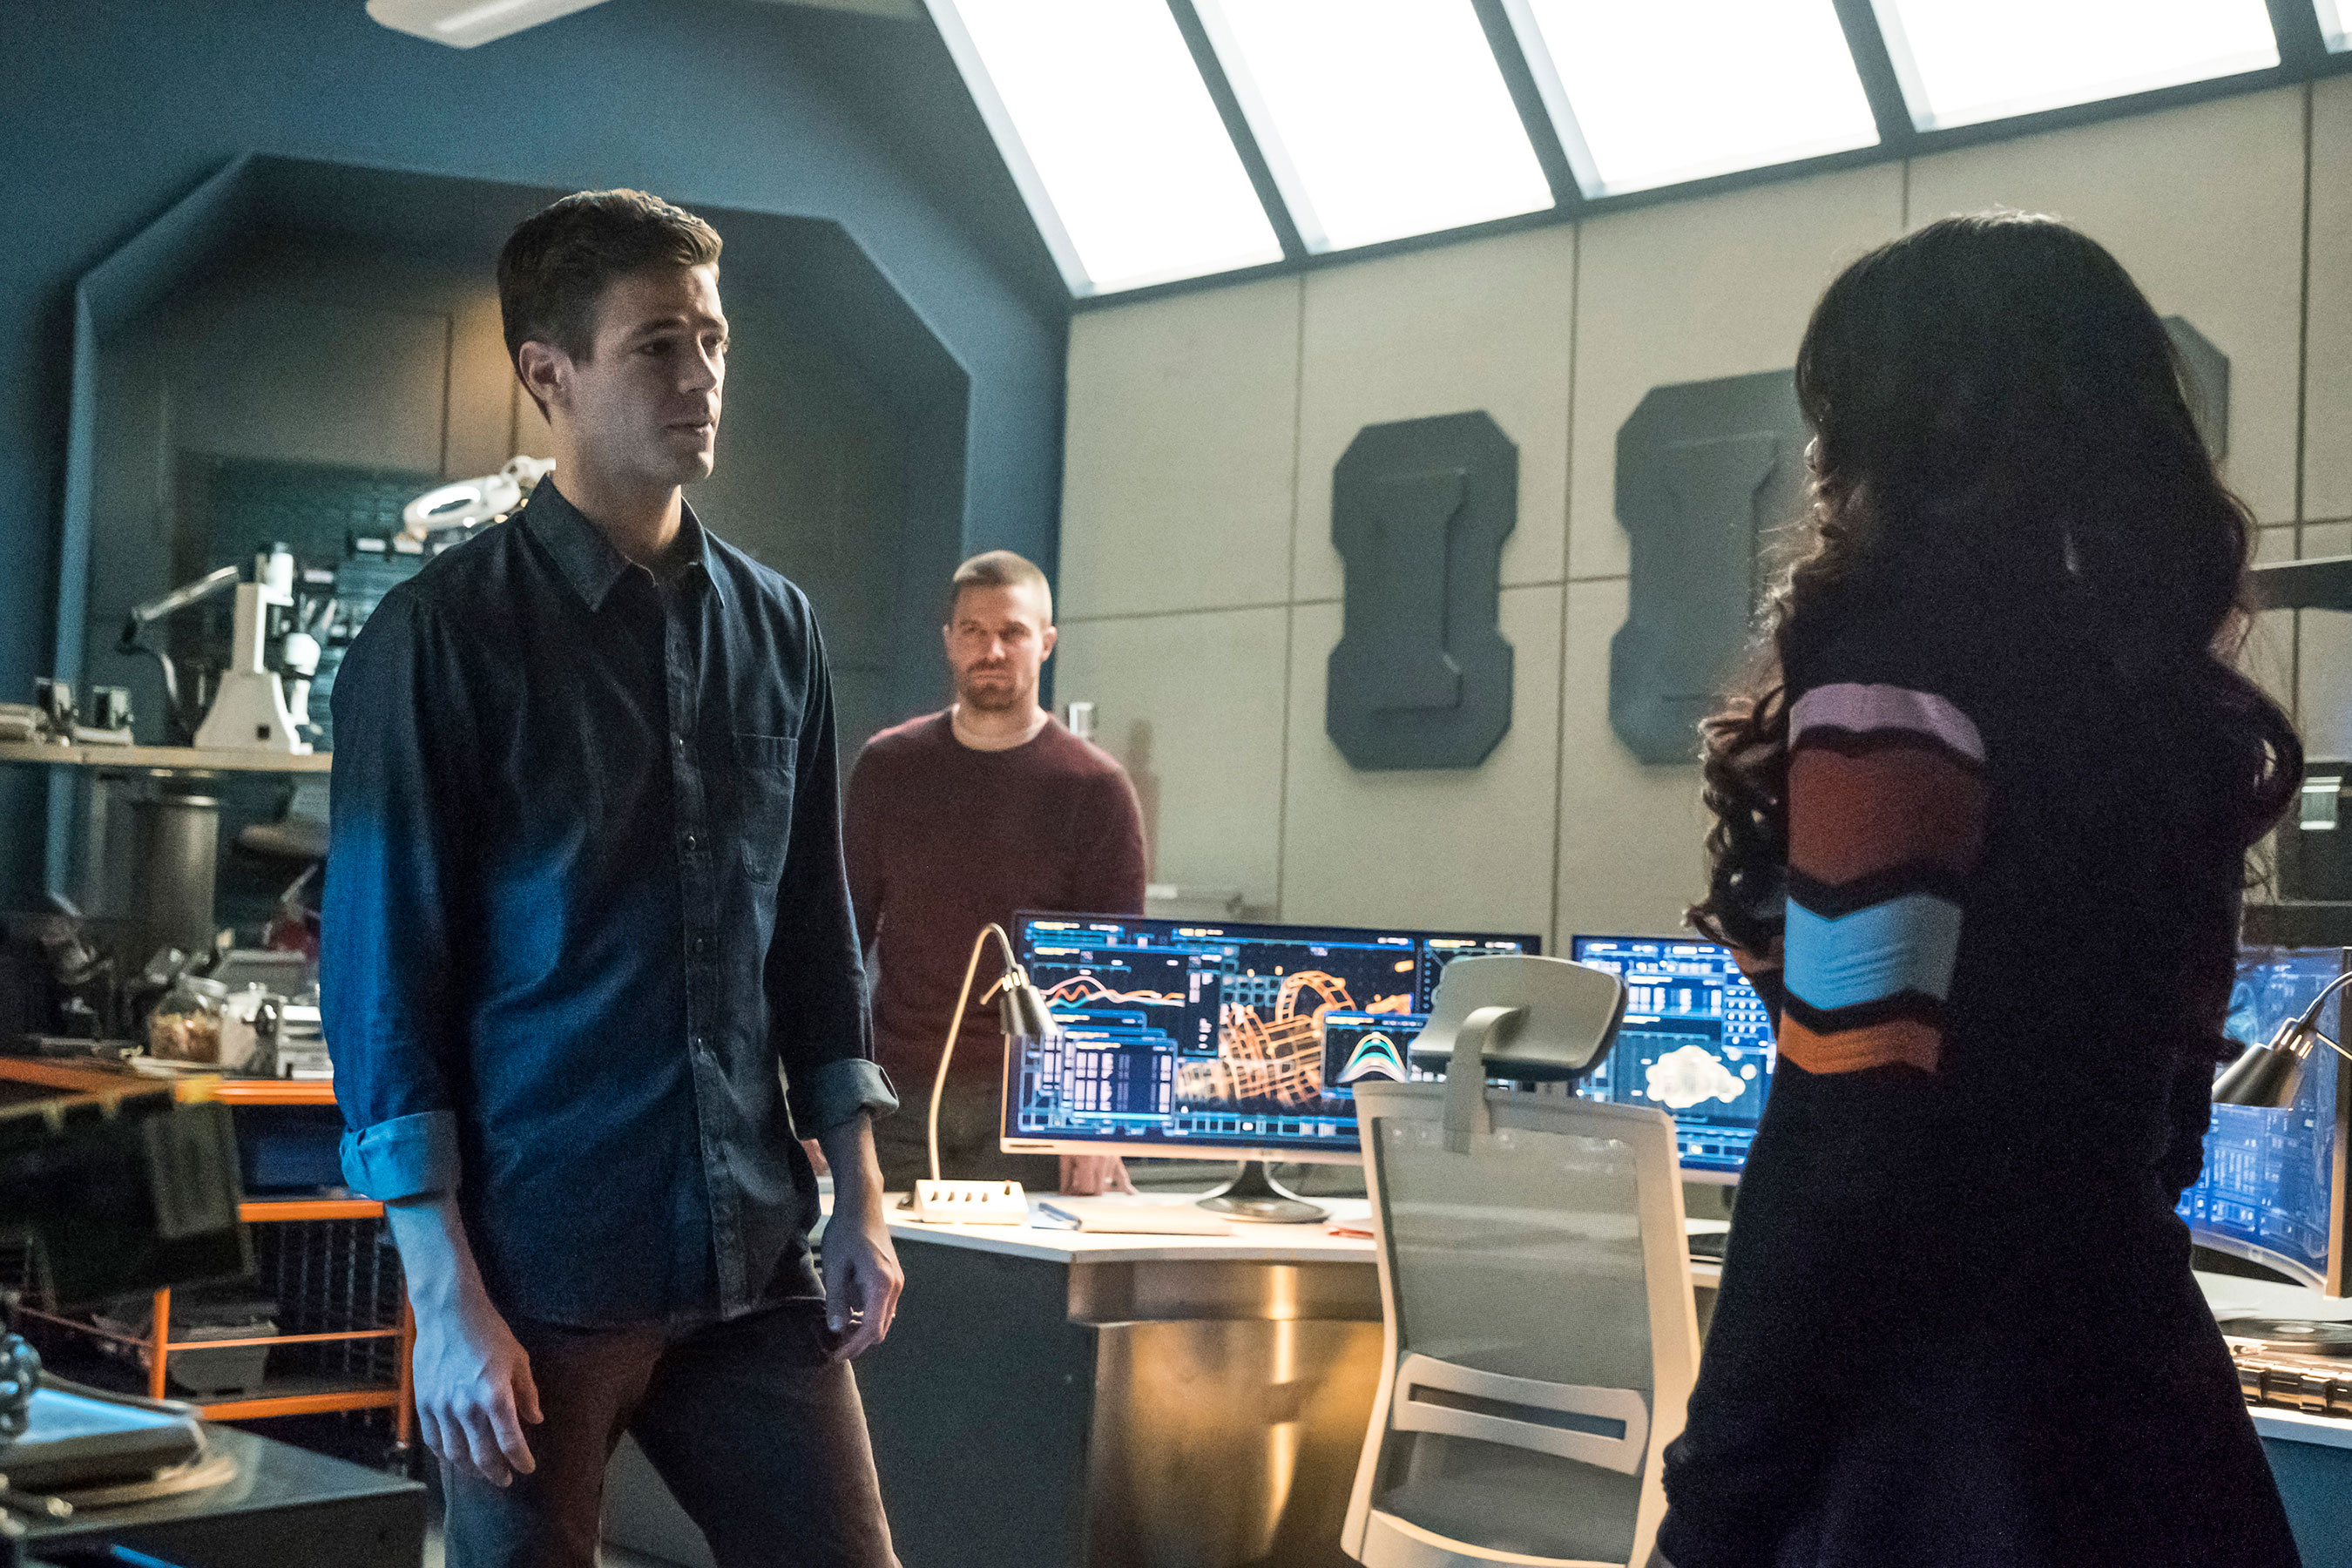 Fotos promocionais da hora de The Flash no crossover Elsewords